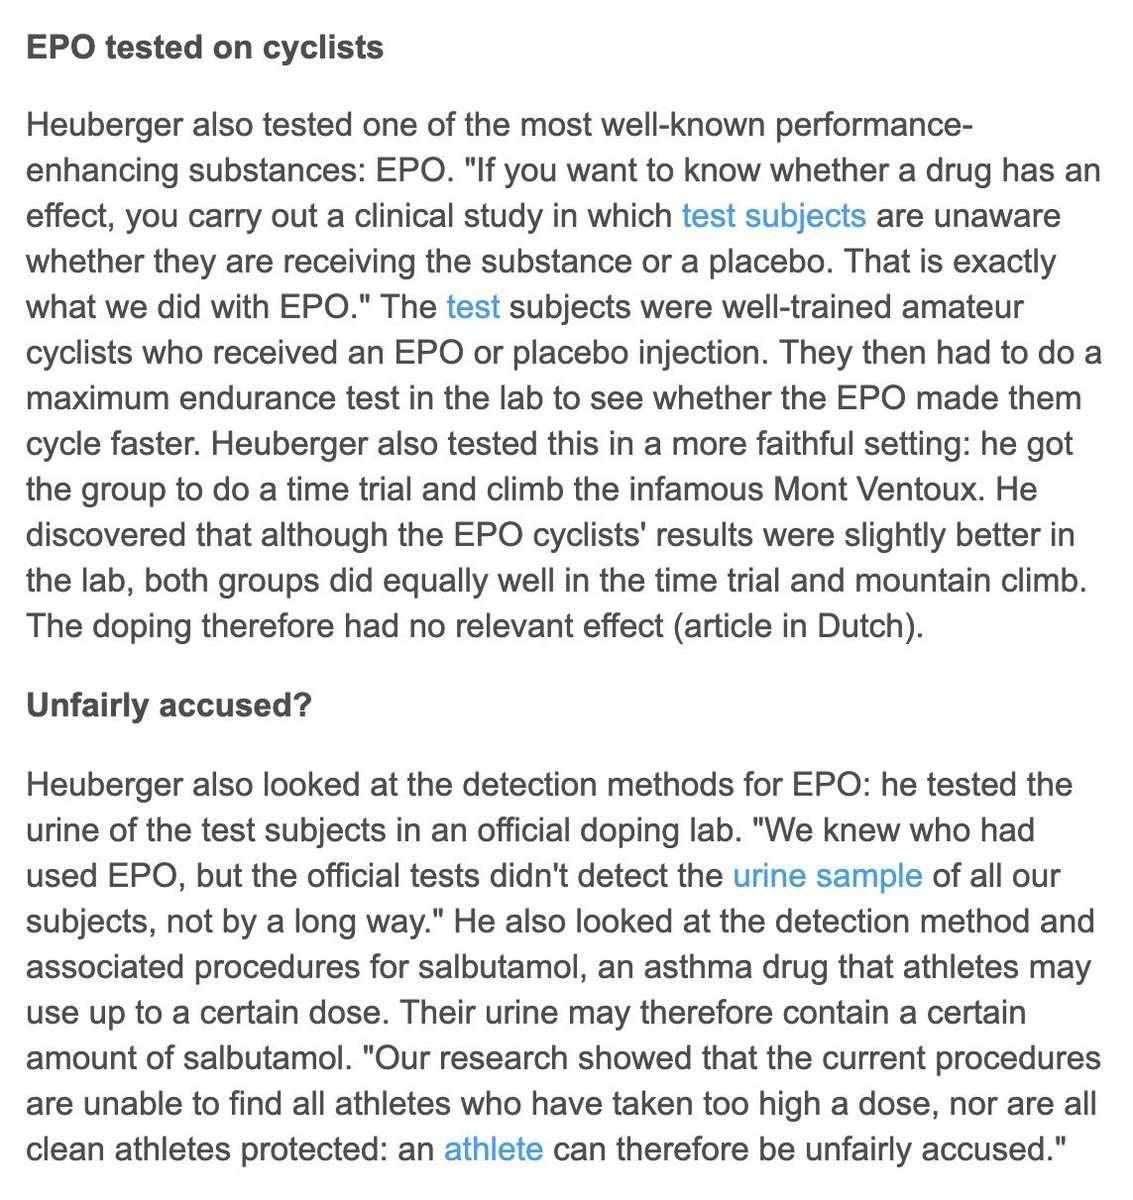 He also found little evidence EPO helped (which requires more evaluation) and that detection methods are garbage: